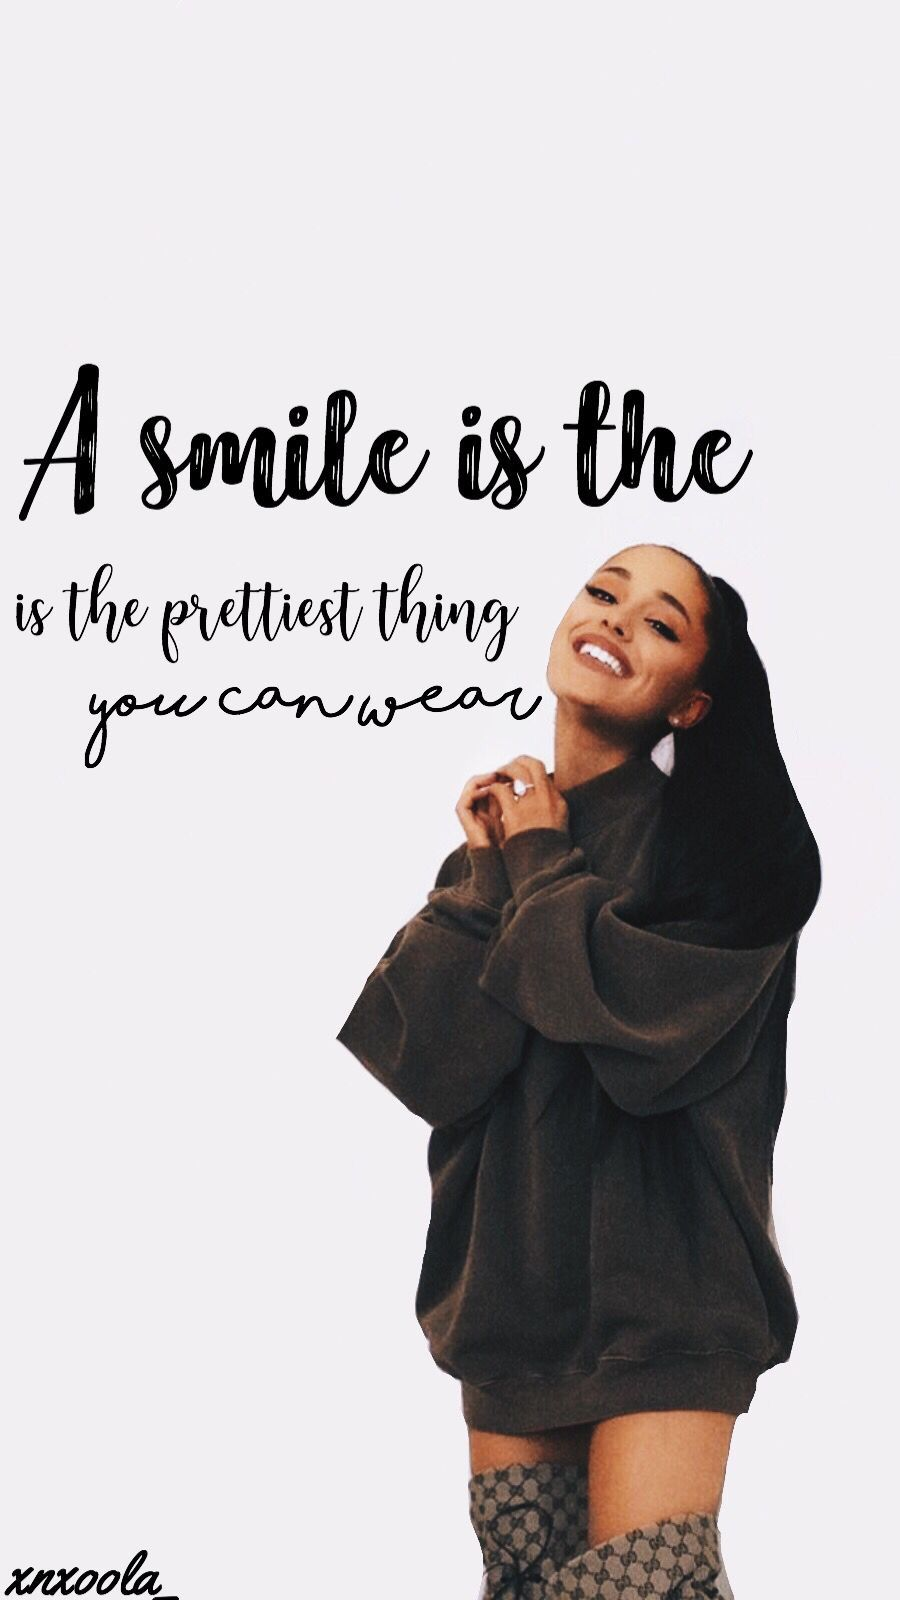 Pin by moonlightbae on My everything in 2019 | Ariana grande ...